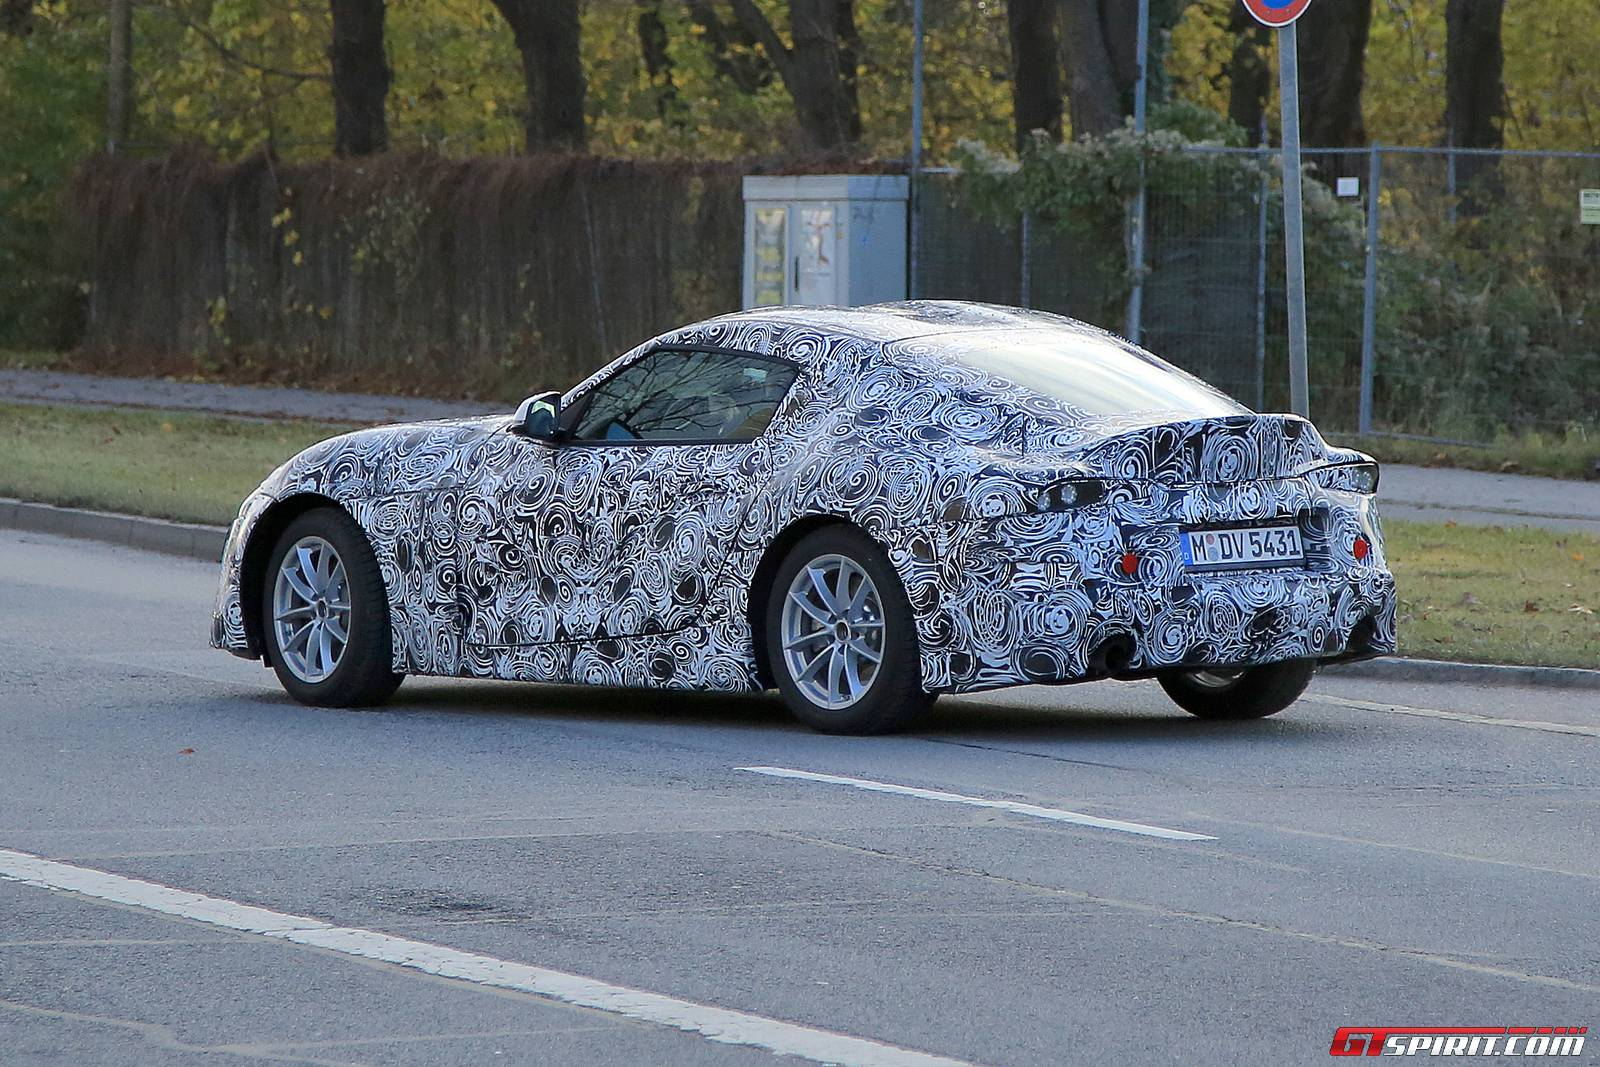 2018 Toyota Supra Latest Spy Shots With Production Body